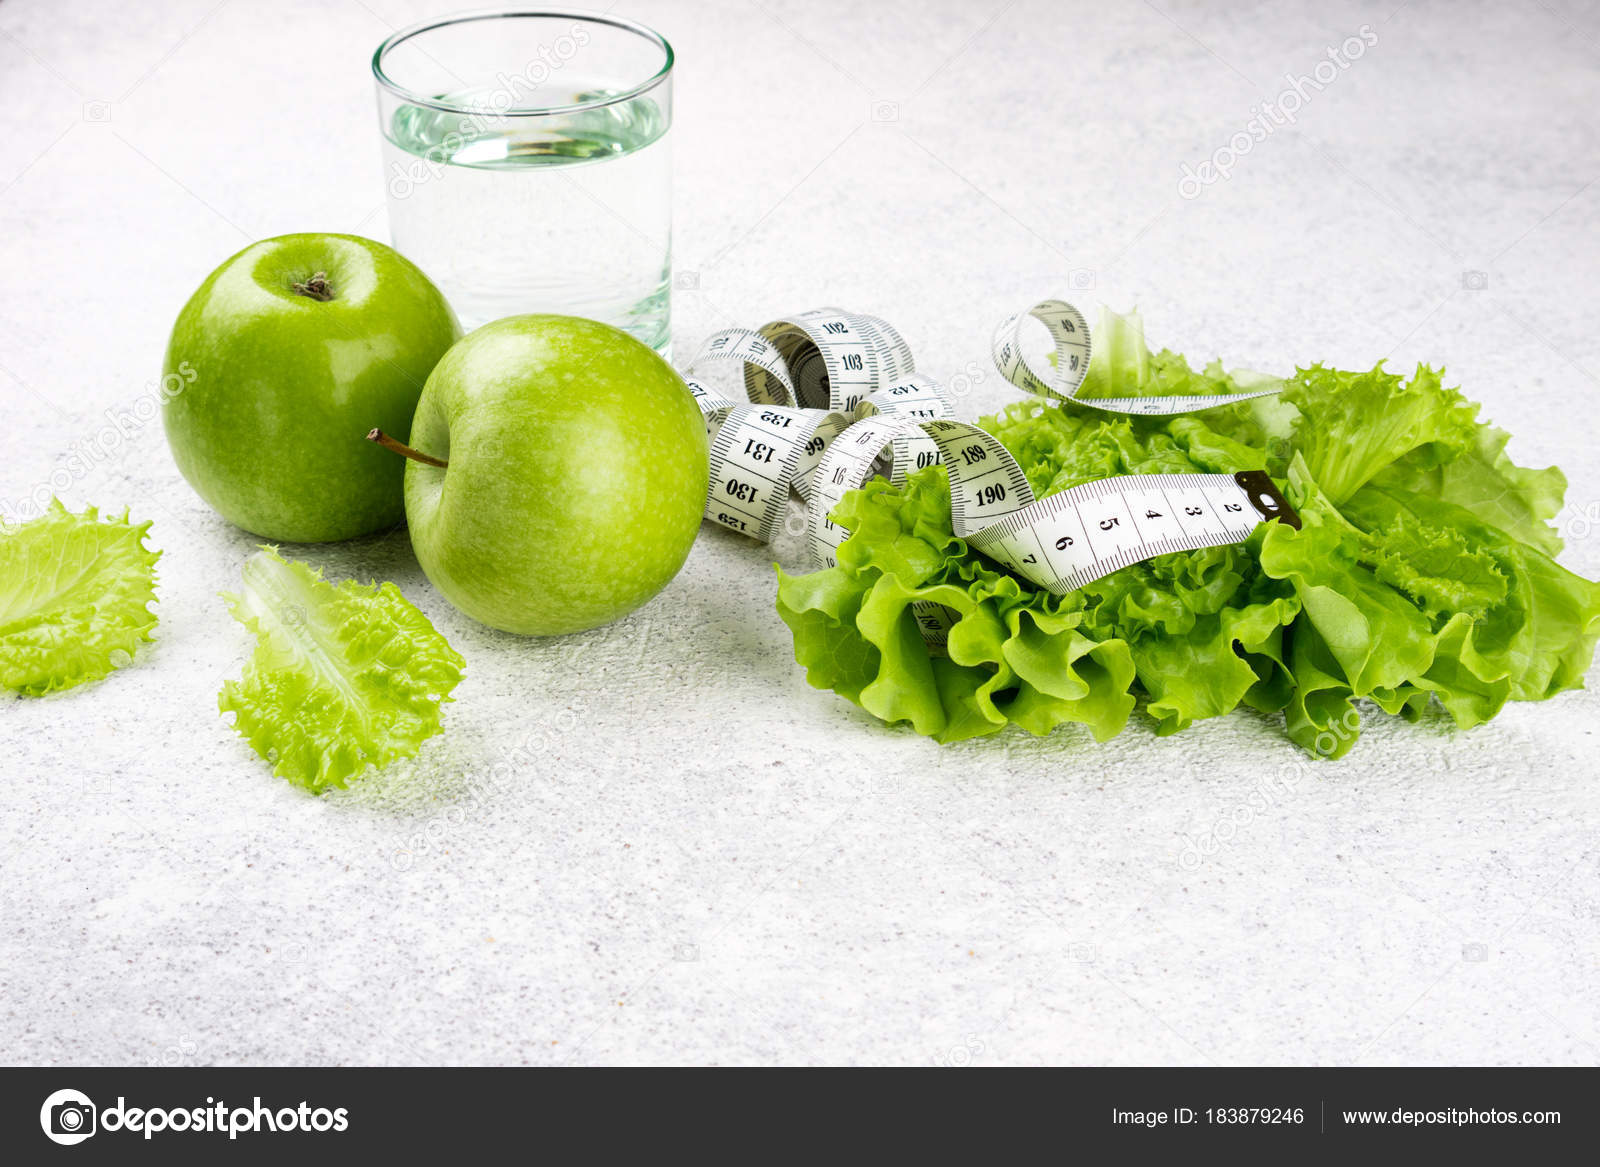 Food plan to lose weight for picky eaters picture 4